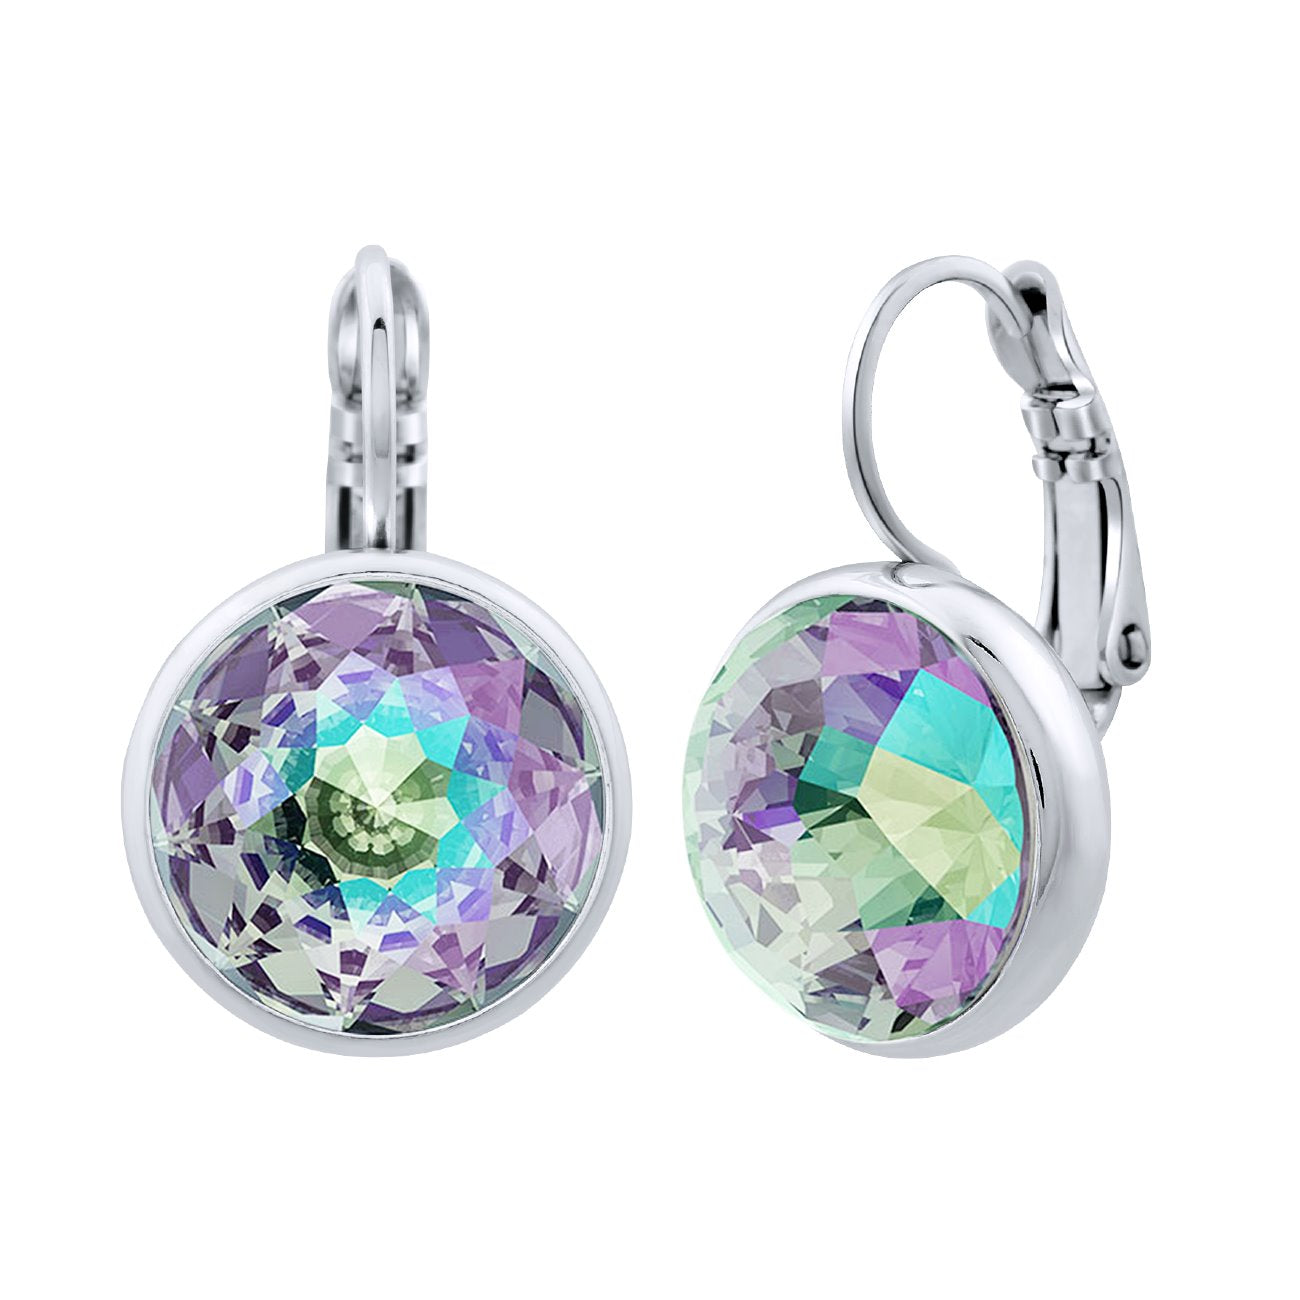 Elysees Huggie Earrings silver Paradise Shine JOY OF SPARKLE FOREVER CRYSTALS